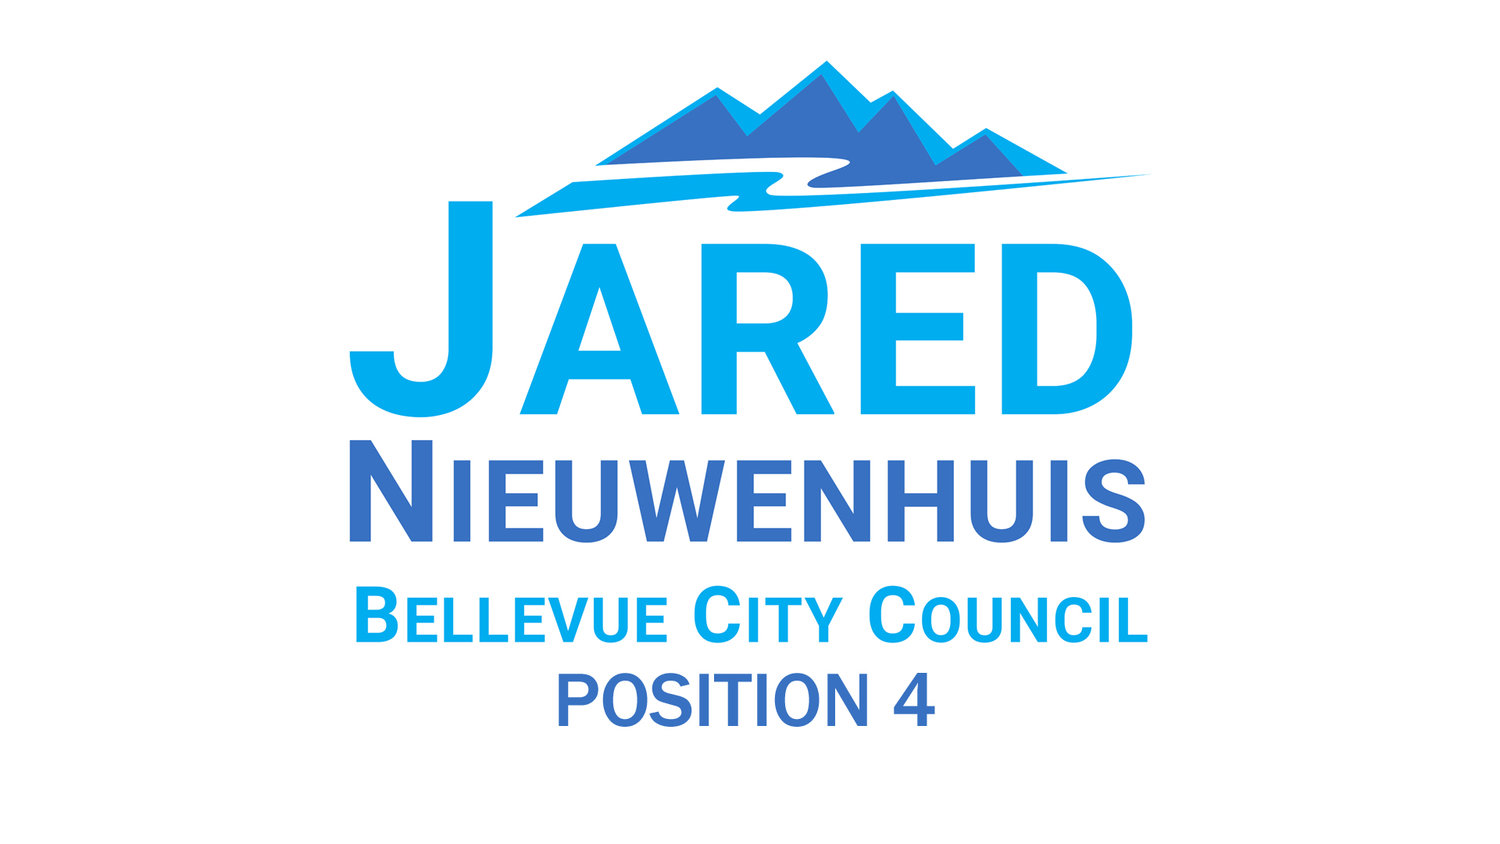 Jared Nieuwenhuis for Bellevue City Council